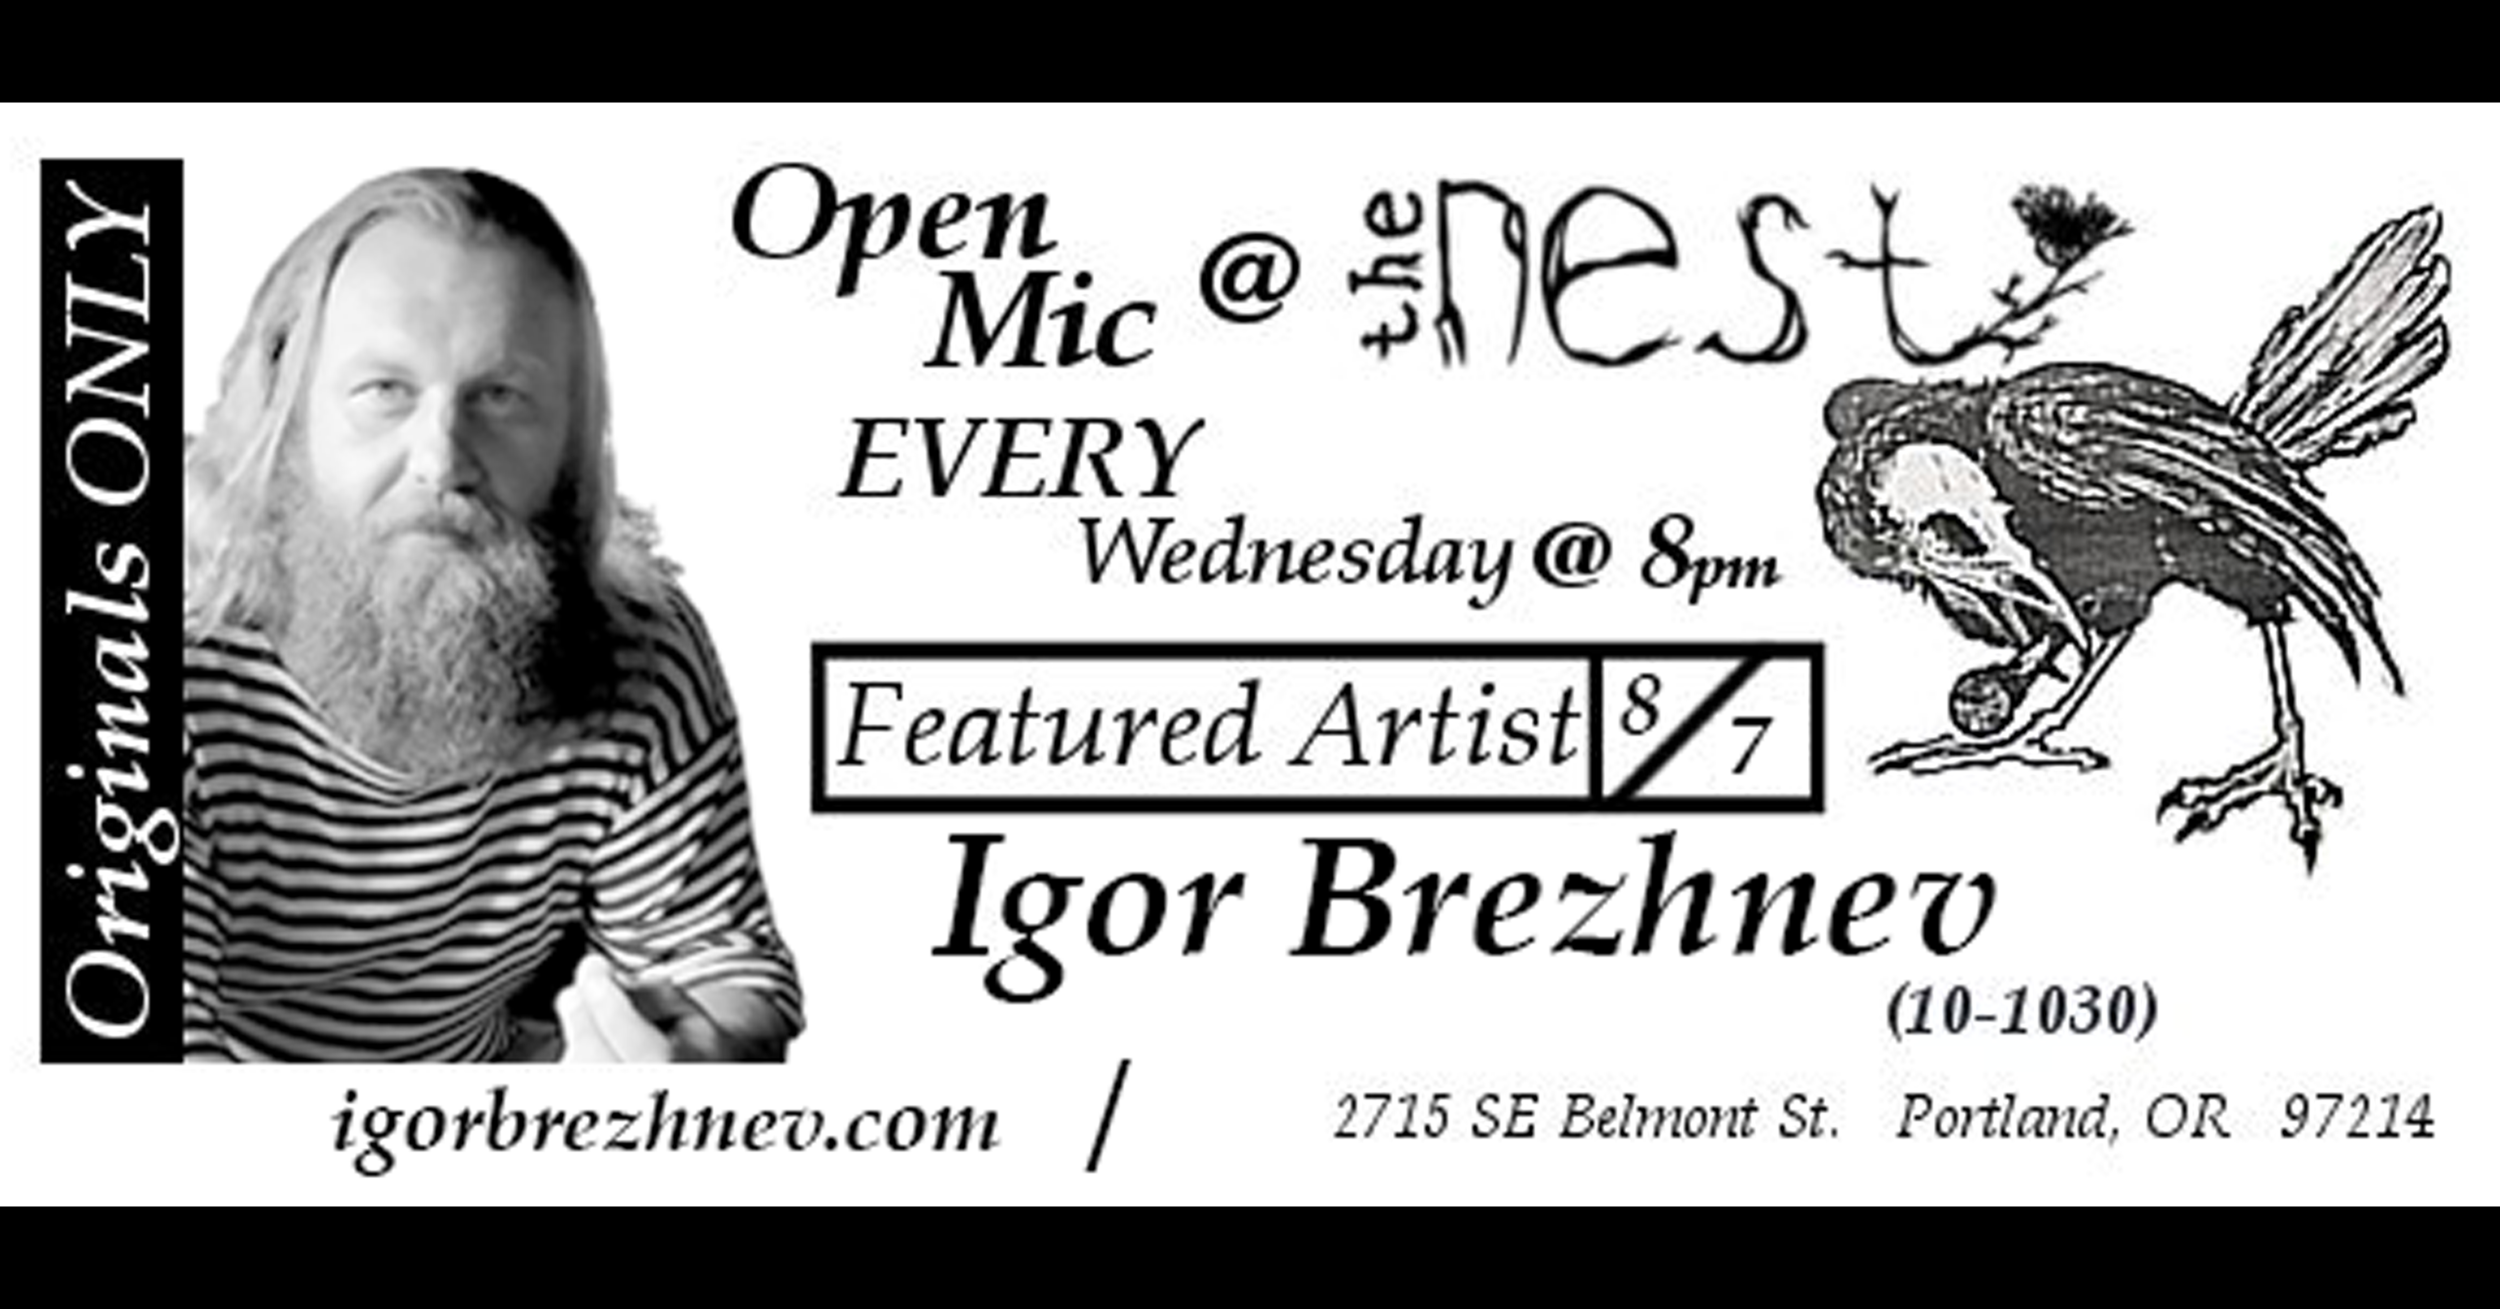 Wednesday, August 7th, 2019, 8PM - The Nest Lounge Open Mic - 2715 SE Belmont St. Portland, OR